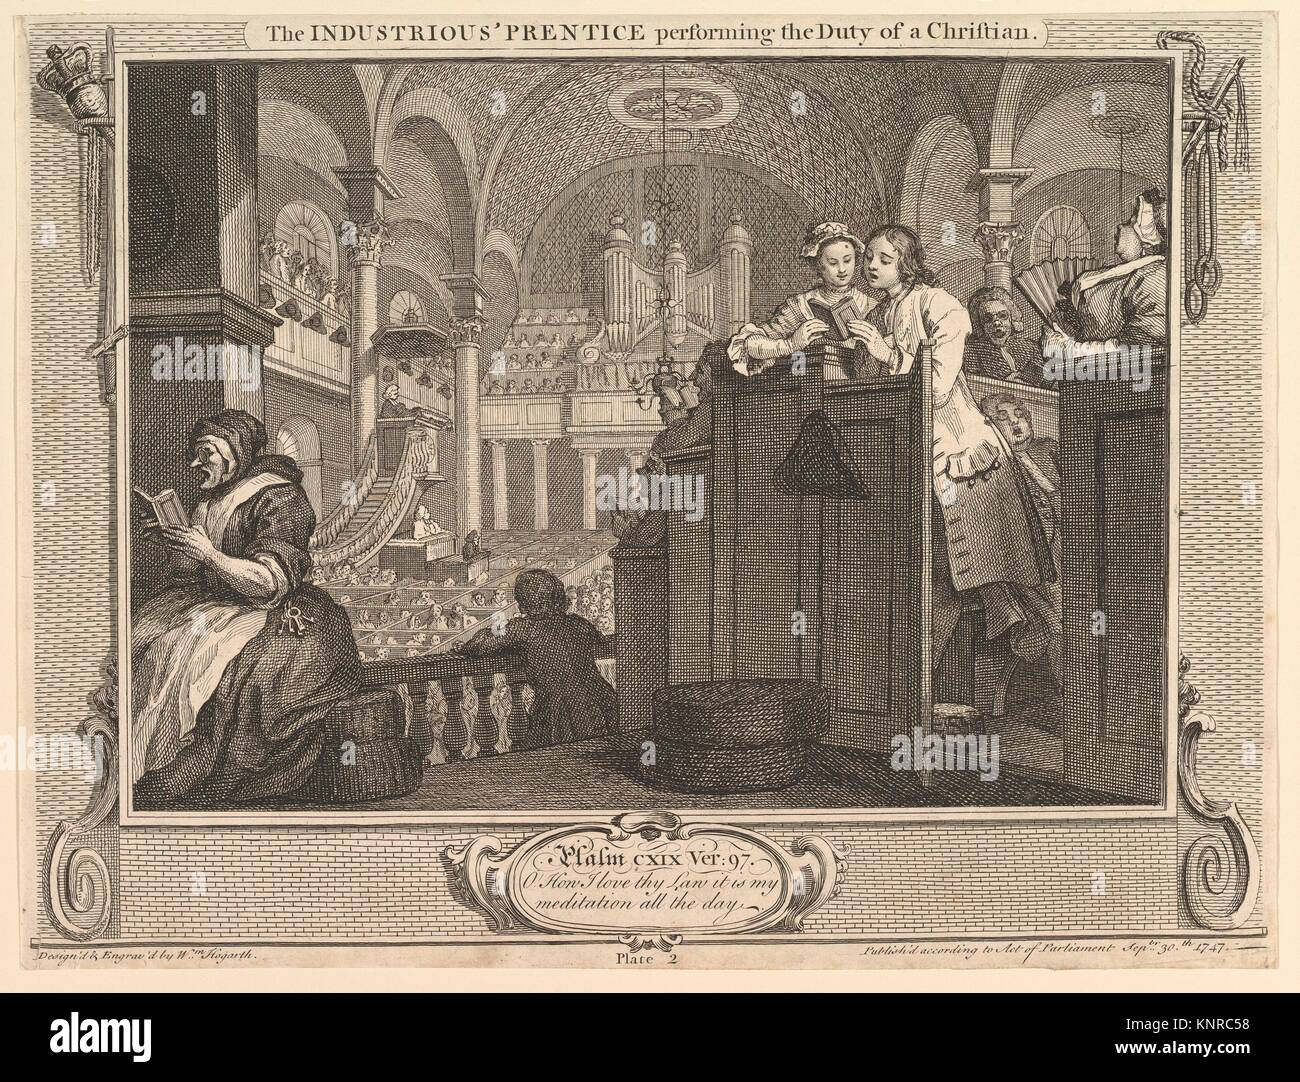 The Industrious 'Prentice Performing the Duty of a Christian: IIndustry and Idleness, plate 2. Artist: William - Stock Image